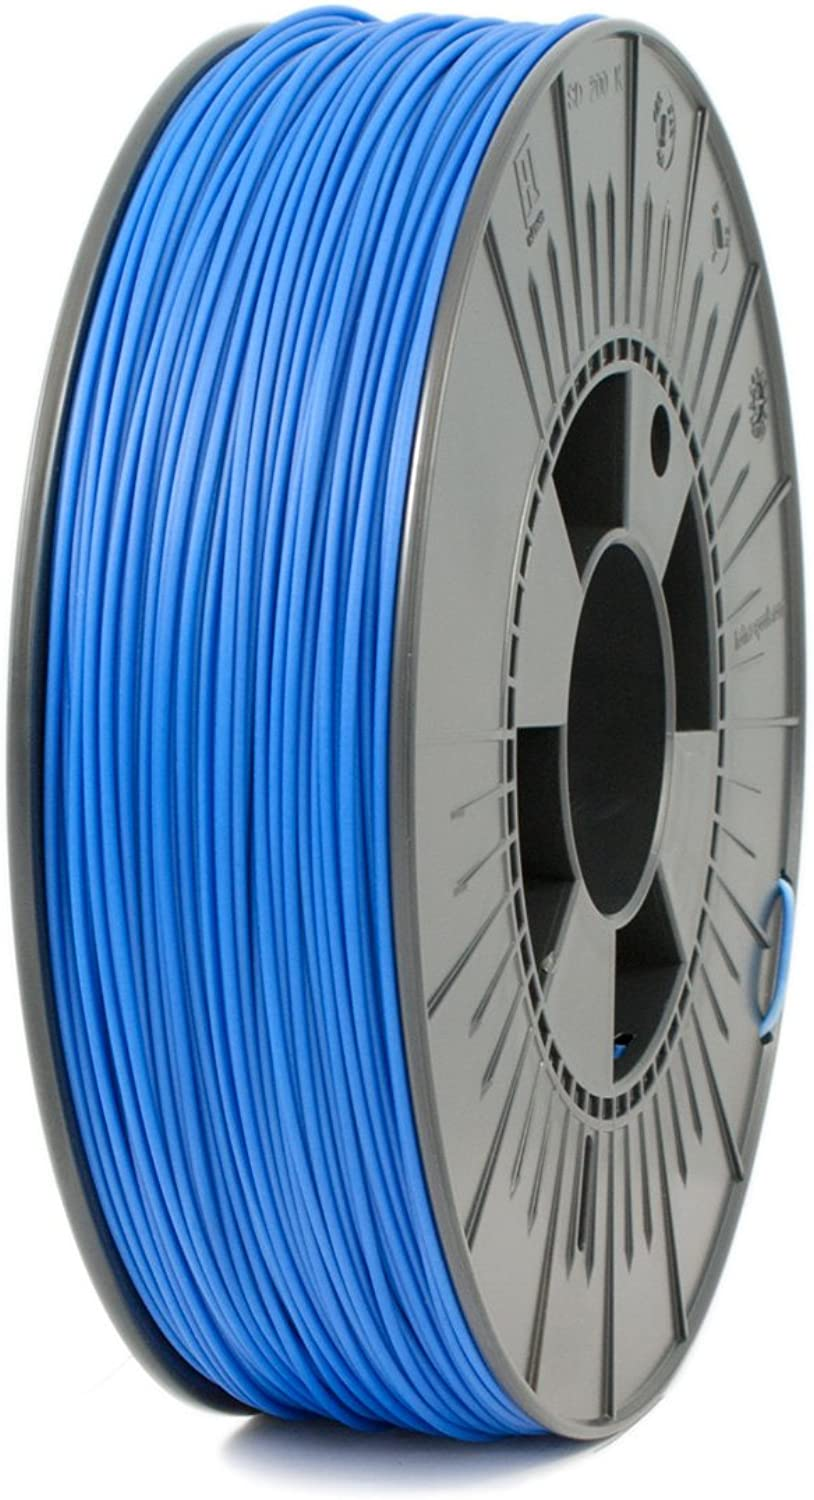 ICE FILAMENTS ICEFIL1HPS145 HIPS Filament, 1.75 mm, 0.75 kg, Daring Dark bluee